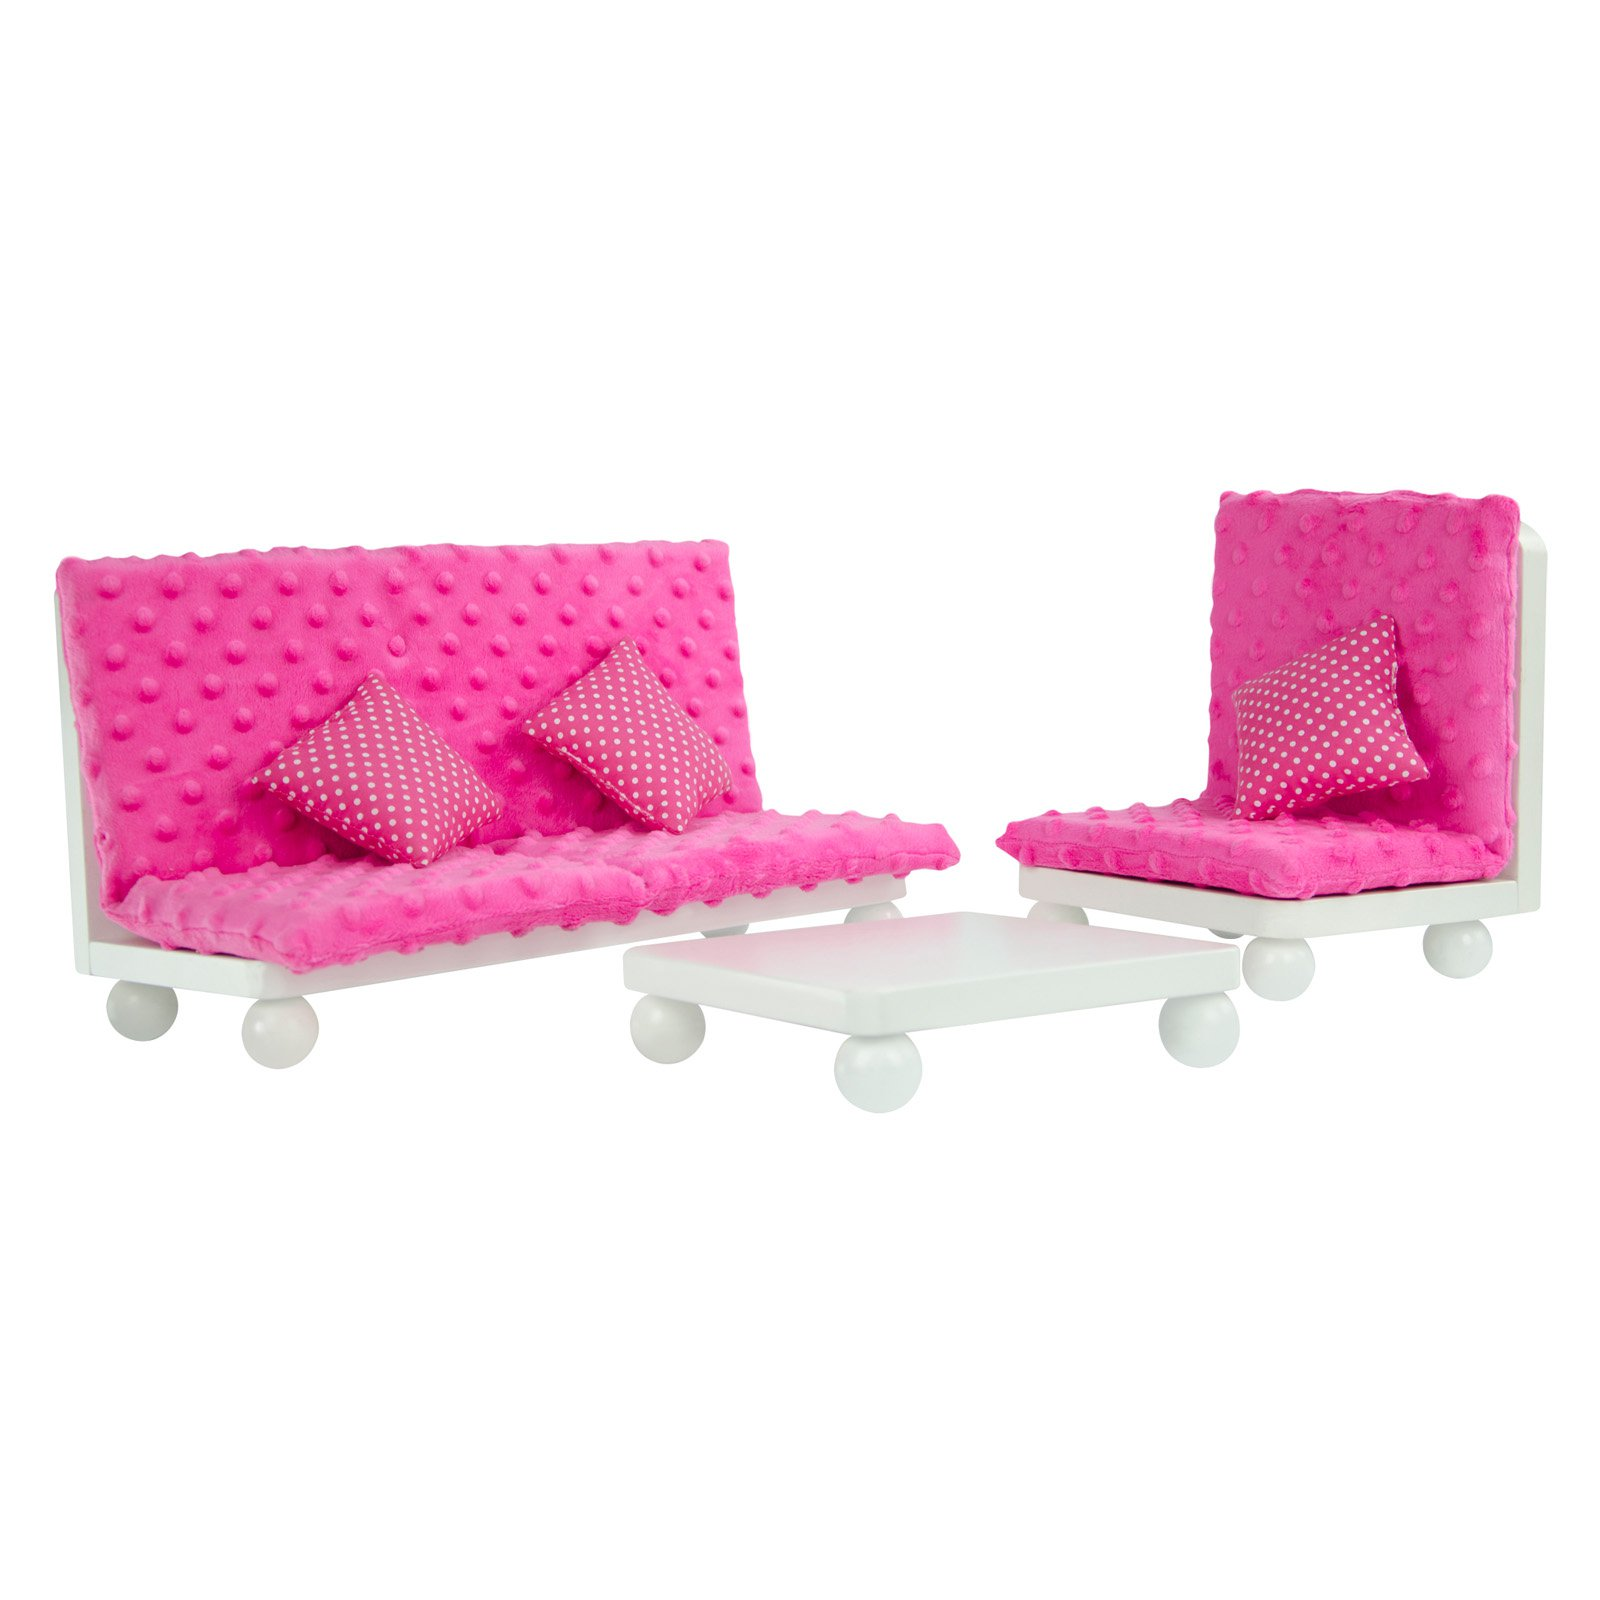 Olivia's Little World Princess Living Room Lounge Set with Pink Cushion Wooden 18 inch Doll Furniture by Teamson